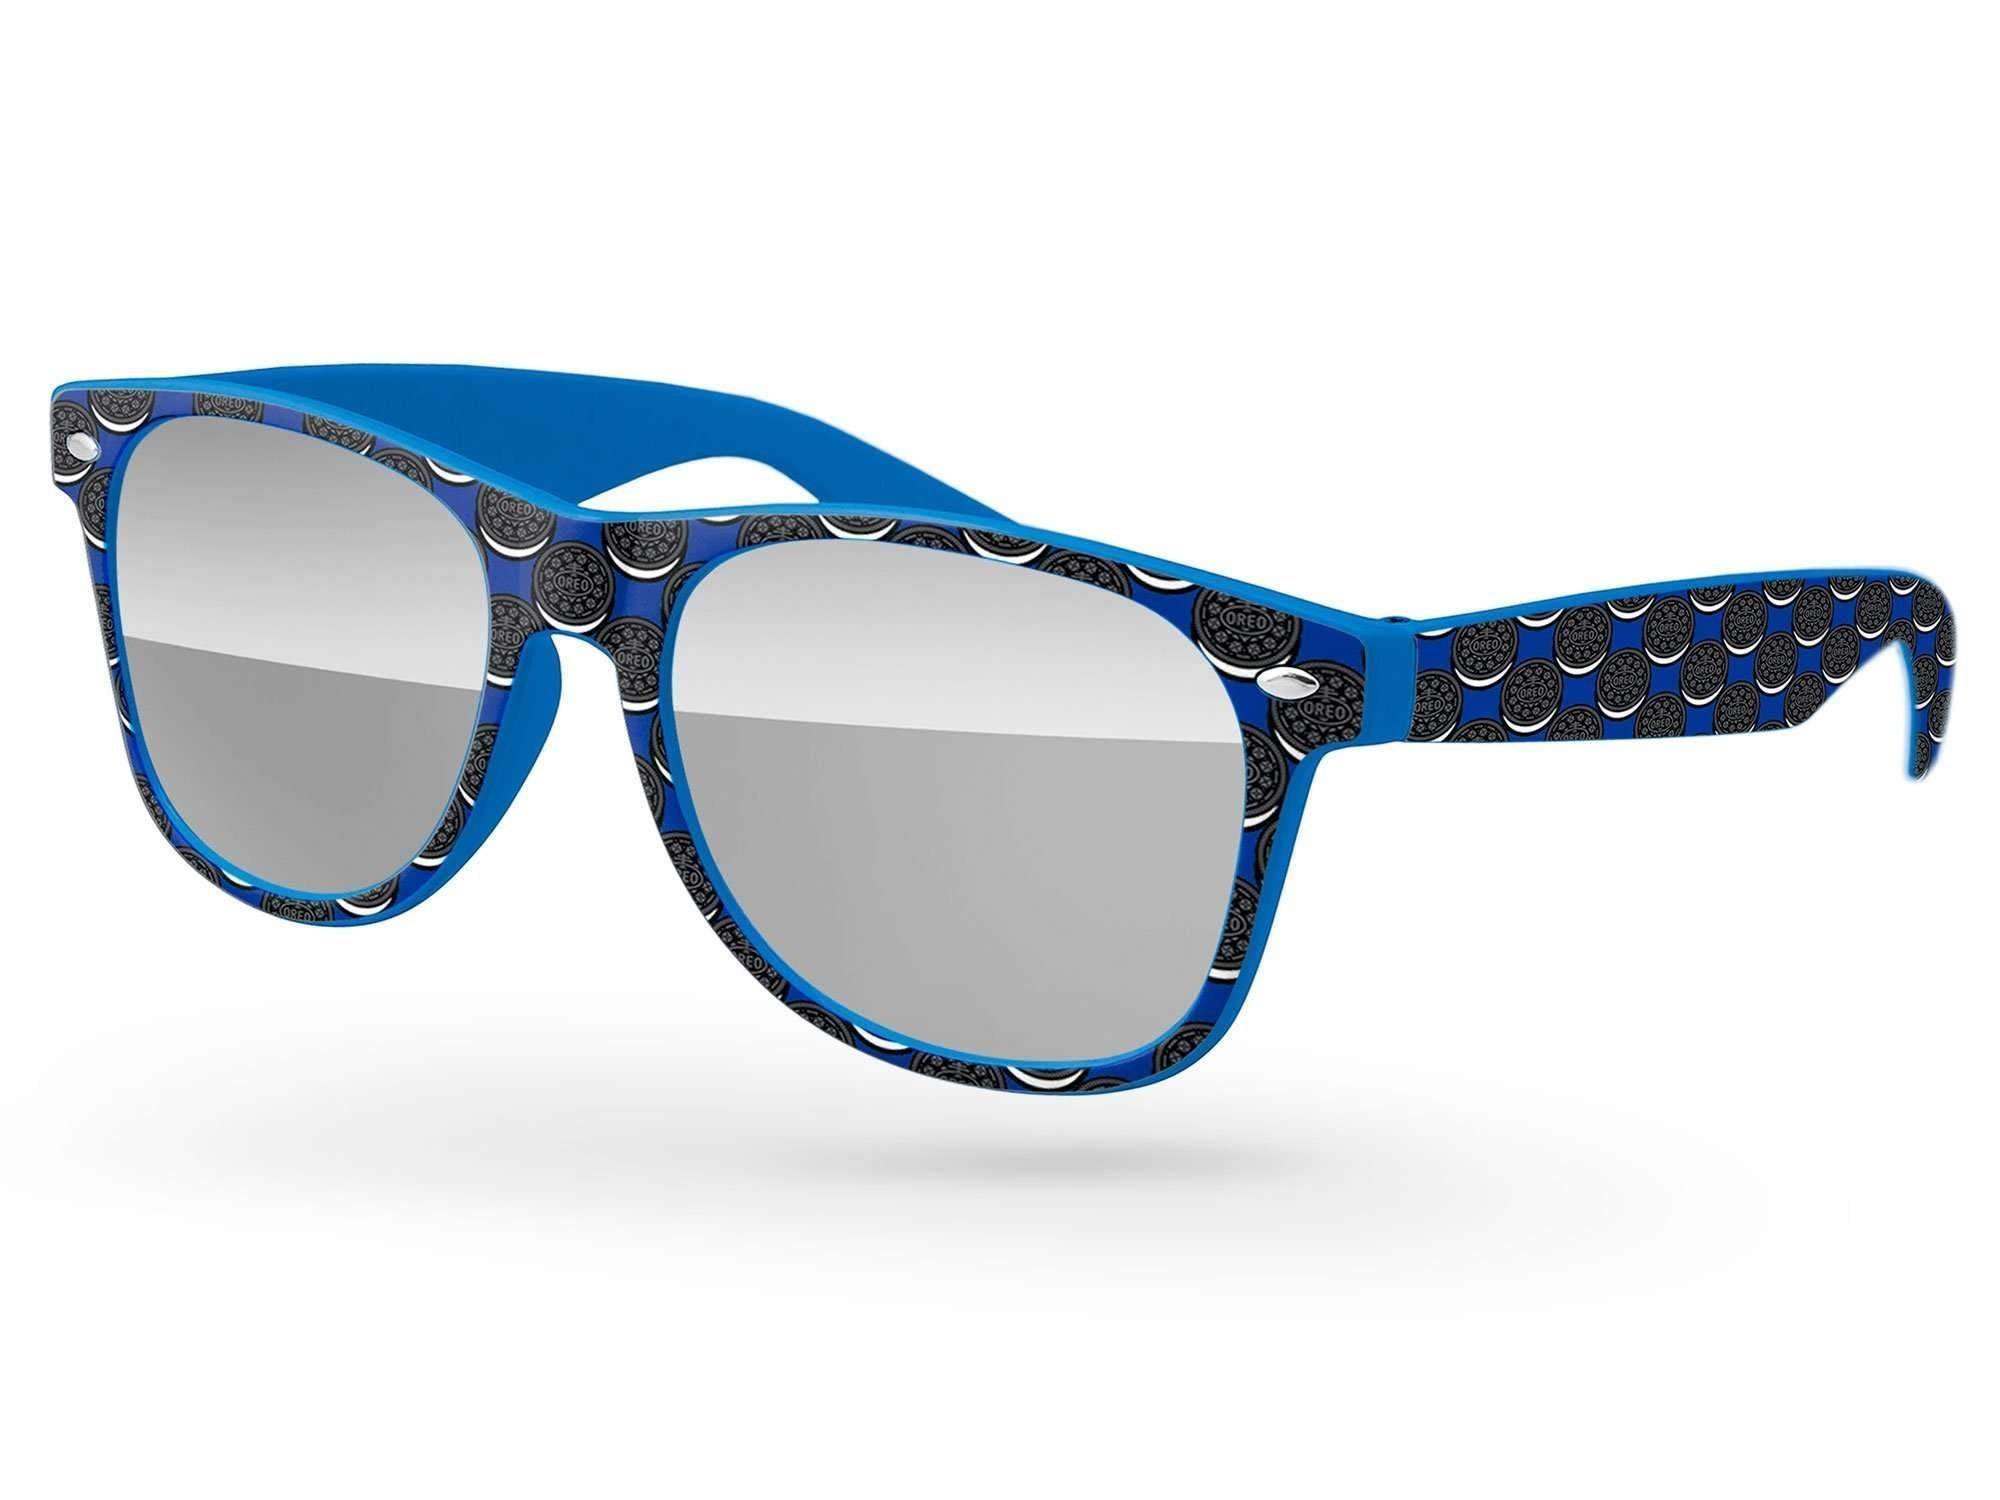 Retro Mirror Promotional Sunglasses w/ full-color full-frame heat transfer